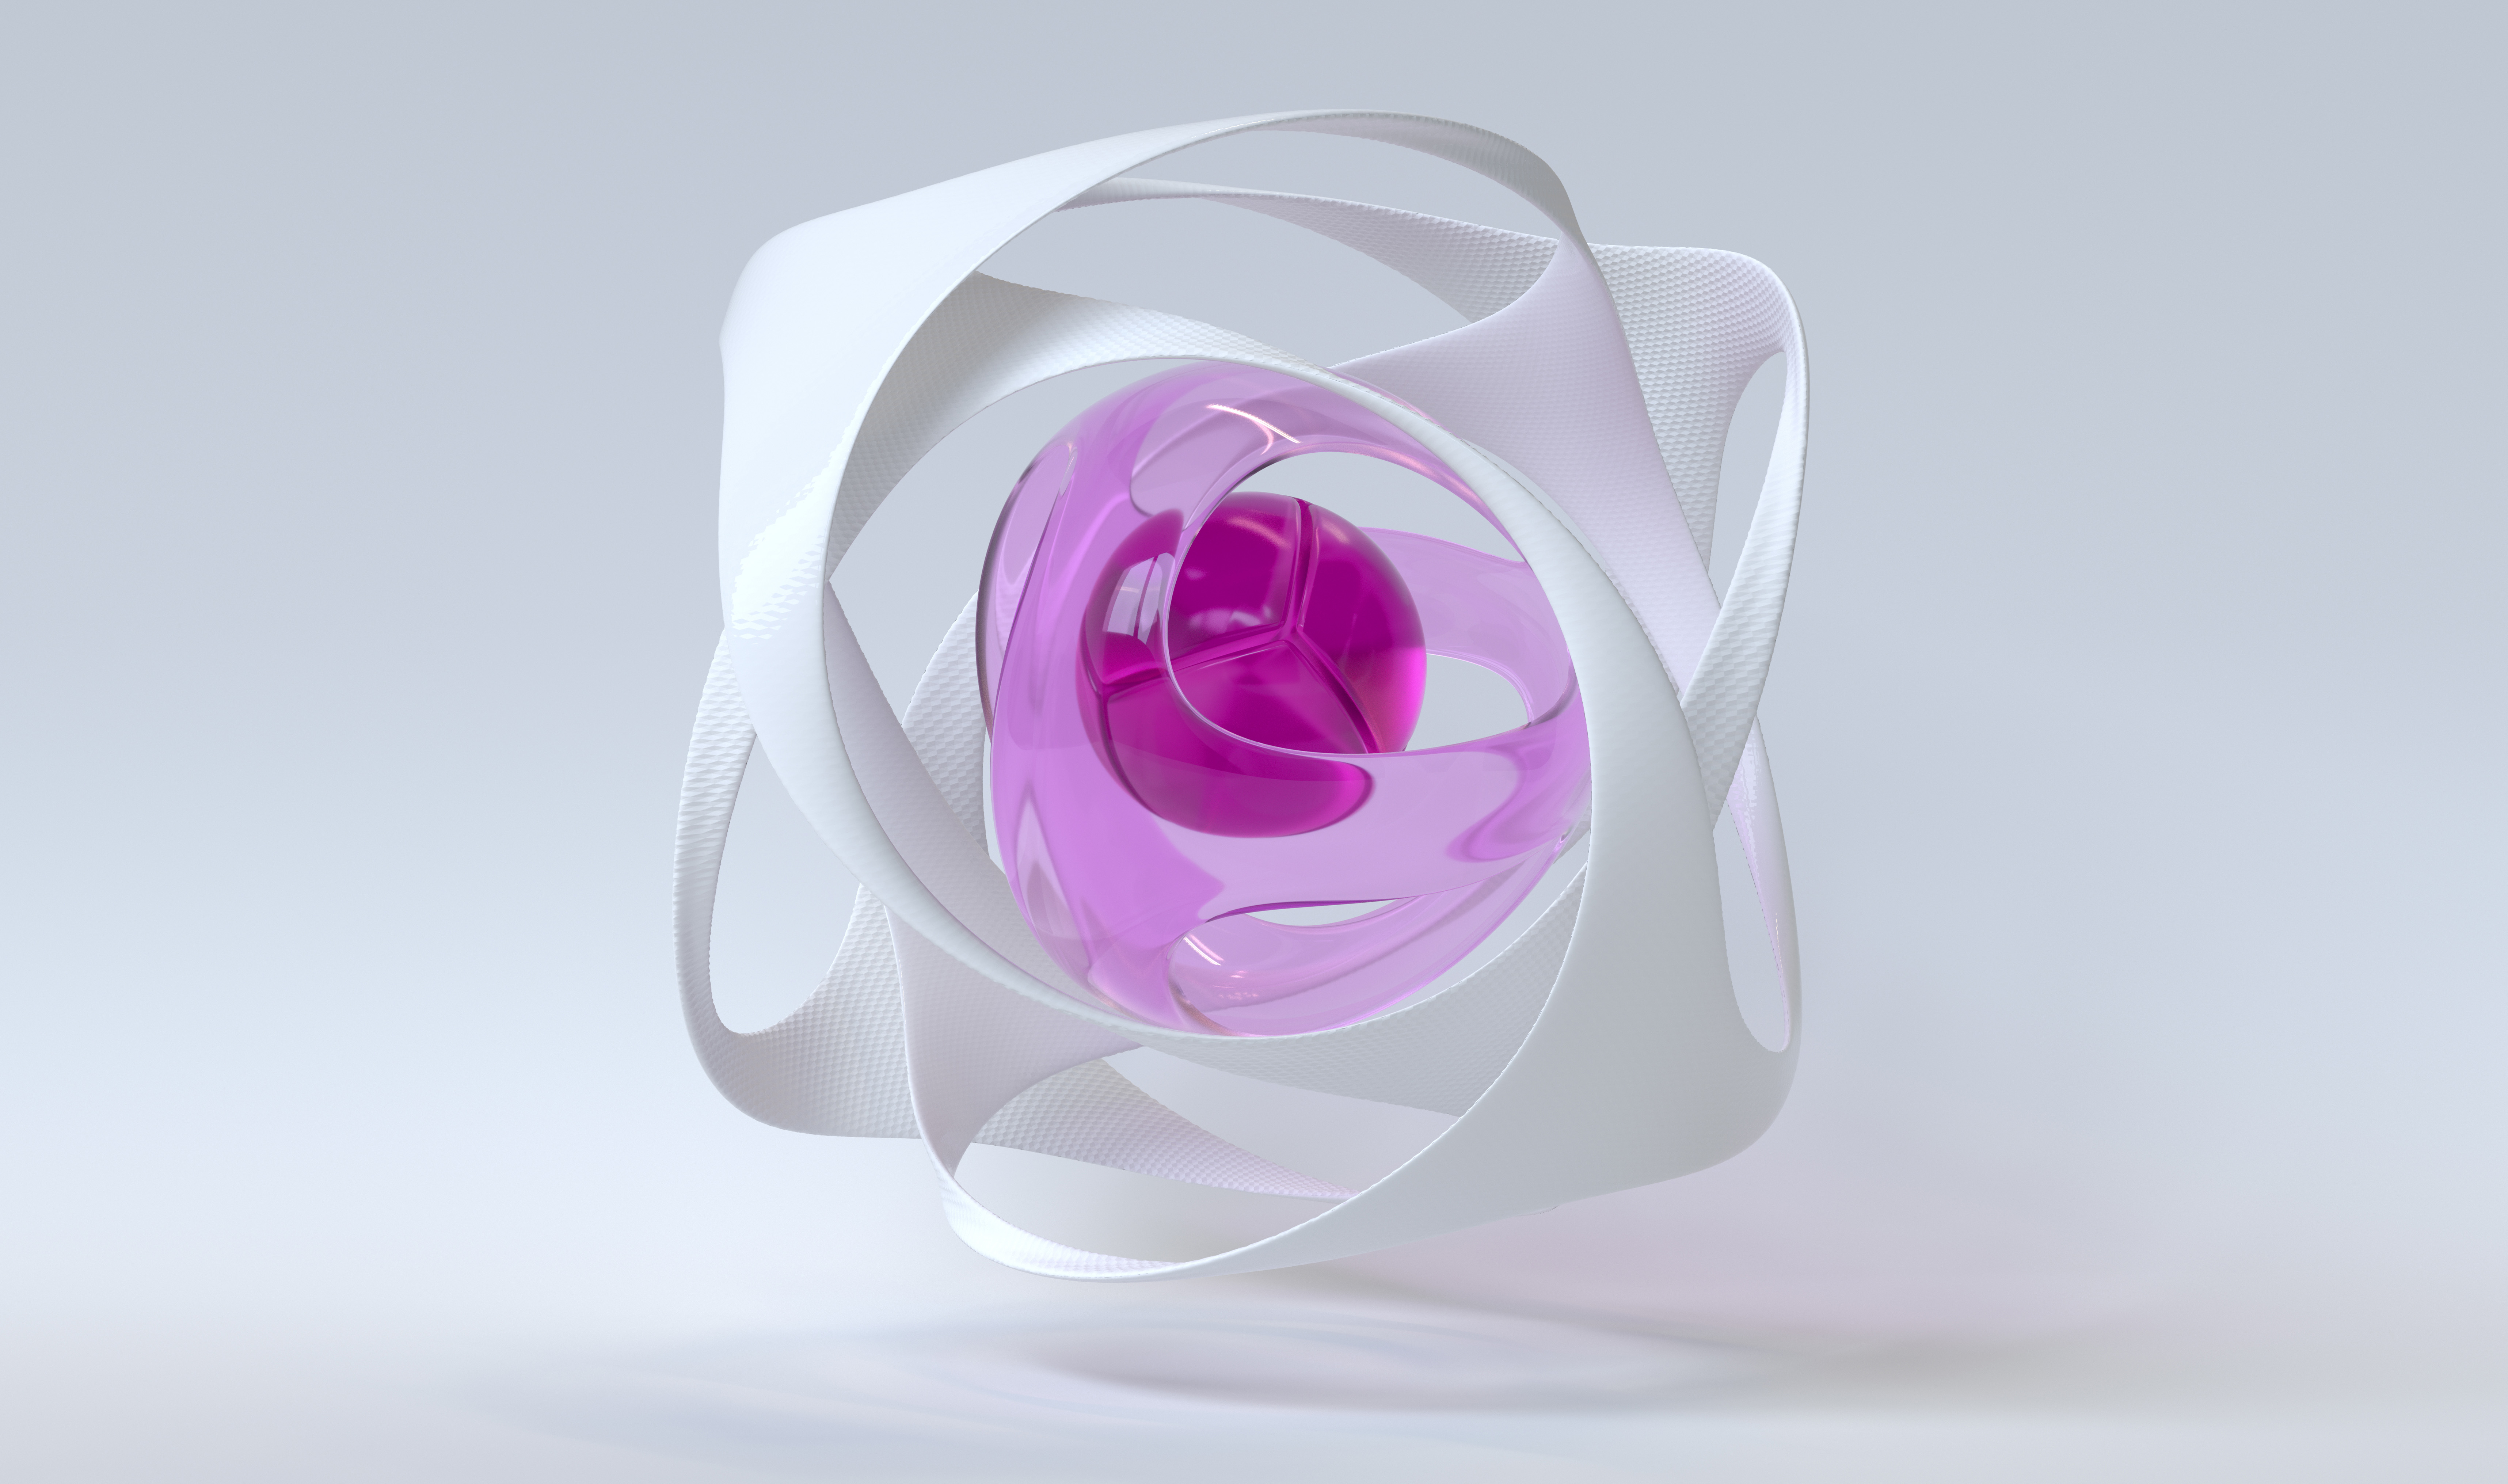 """Evonik plans to follow the rebranding of its material portfolio with the launch of a new """"ready-to-use photopolymer"""" in the coming months. Photo via Evonik."""